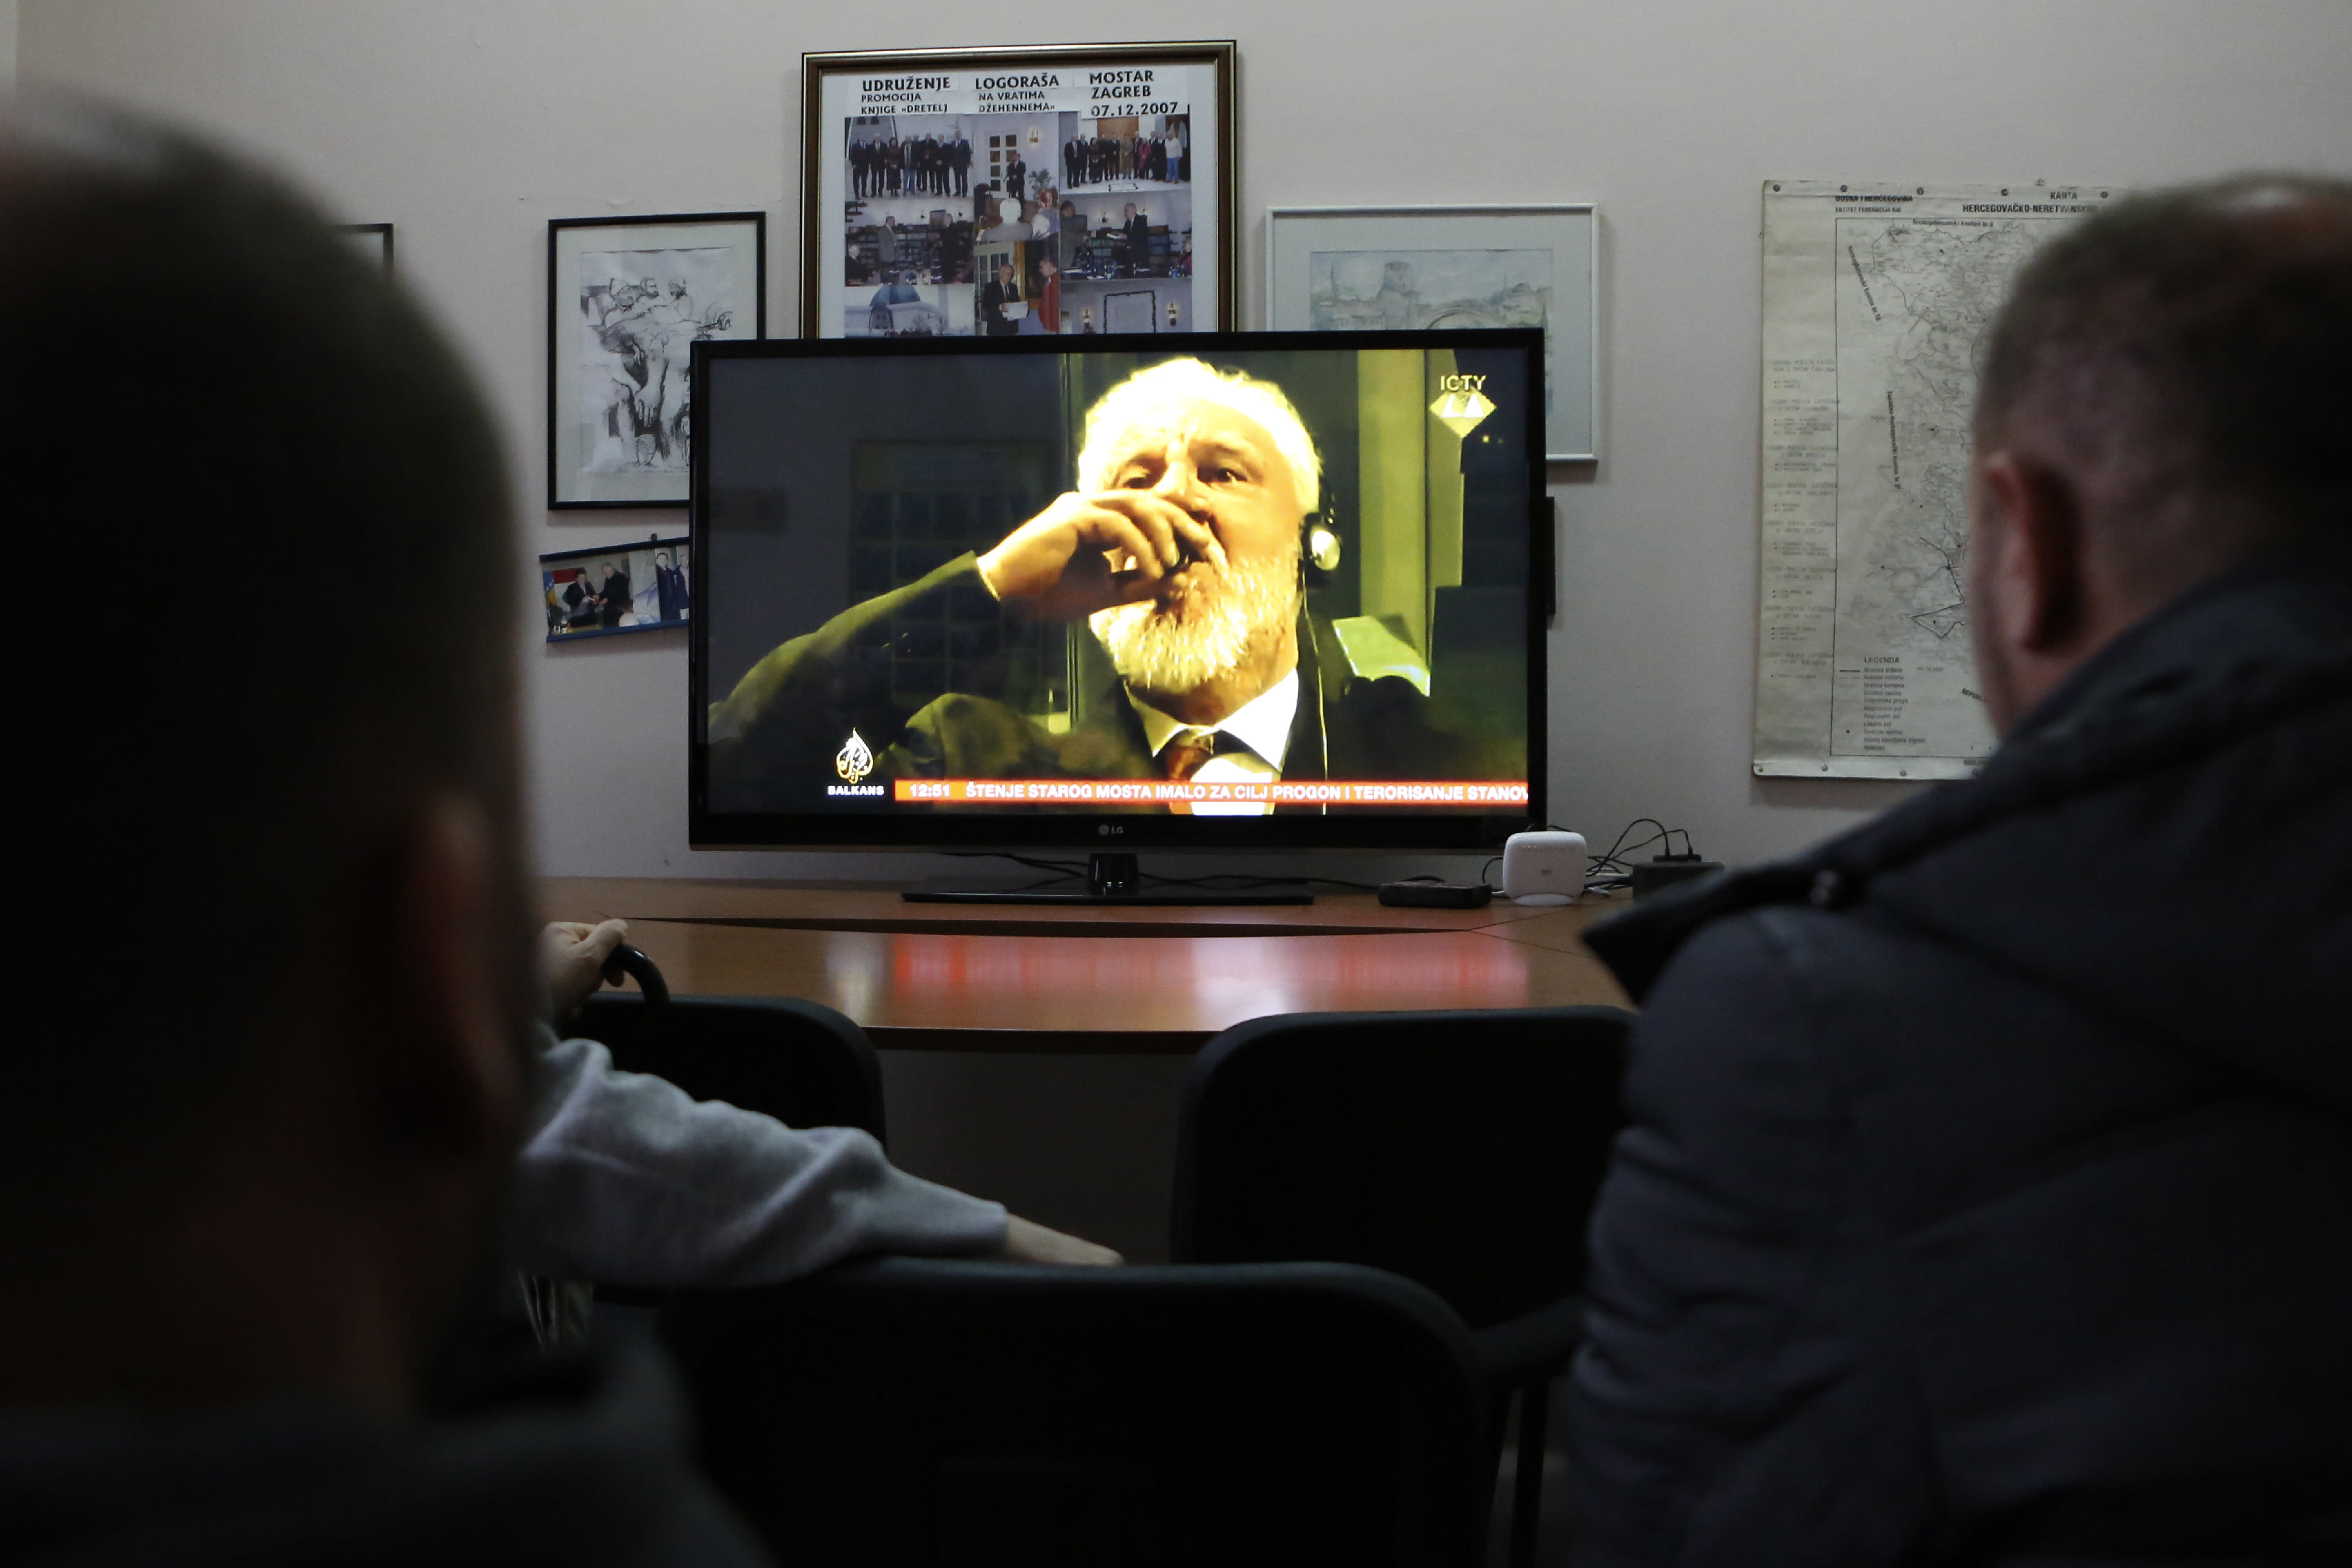 """FILE - In this Wednesday, Nov. 29, 2017 file photo, Bosnian people watch the live TV broadcast from the International Criminal Court for the former Yugoslavia (ICTY) in The Hague as Slobodan Praljak brings a bottle to his lips, in southern Bosnian town of Mostar 140 kms south of Sarajevo. Julian Assange relayed how he """"binge-watched"""" the suicide of the former Bosnian Croat general in a United Nations courtroom three years ago, a doctor who visited the WikiLeaks founder on several occasions while he was in the Ecuadorian Embassy in London told an extradition hearing Thursday, Sept, 24, 2020. (AP Photo/Amel Emric, file)"""